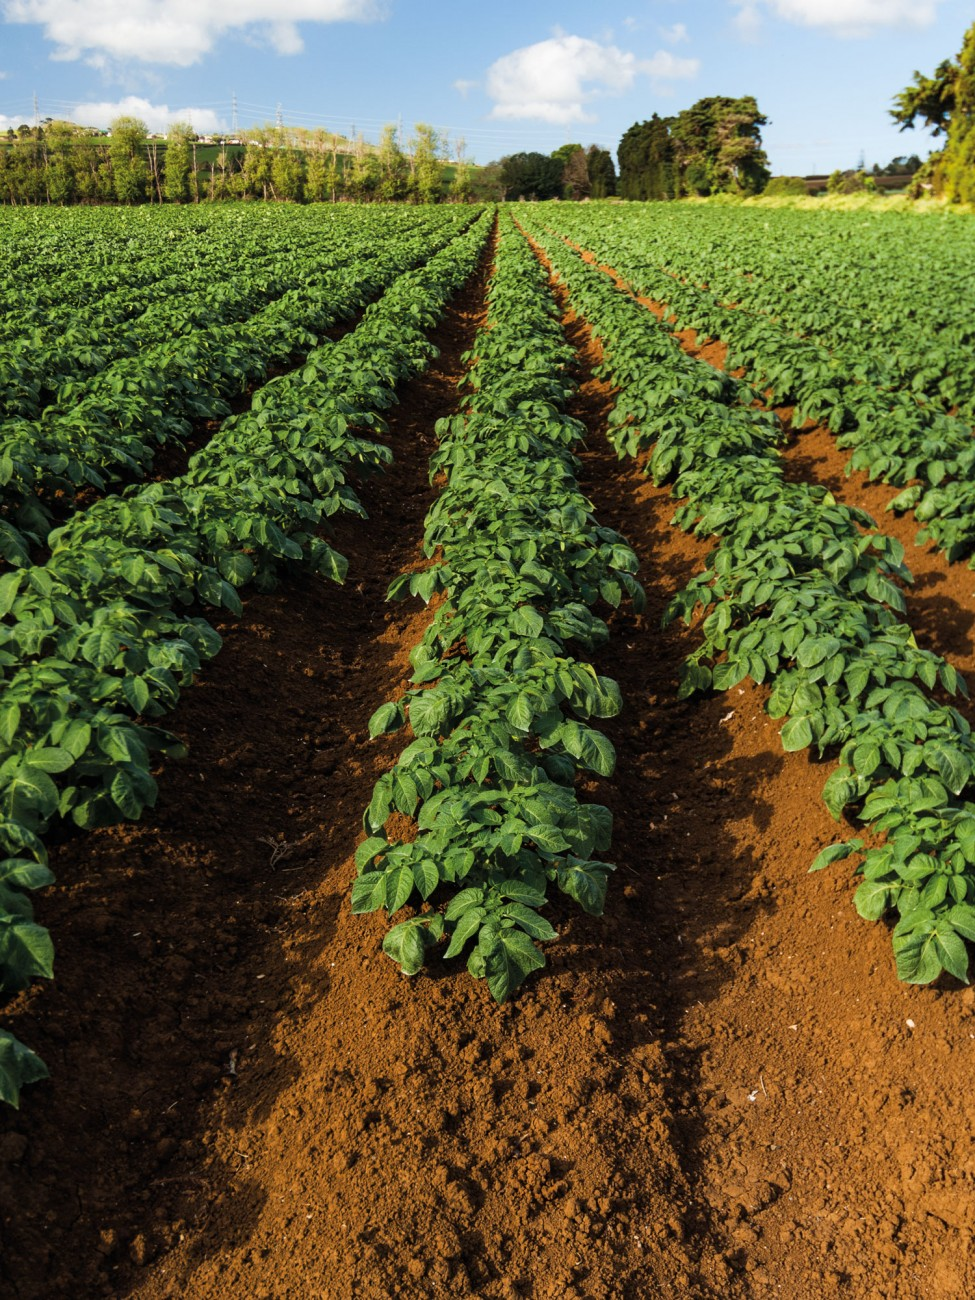 Rows of potatoes sprout from the fertile soils of the Bombay Hills, just south of Auckland, one of New Zealand's largest potato-growing regions. Prior to the 1960s they would have been destined only for home kitchens, but now more than half are used for chip and crisp production. Export of processed potatoes (mainly frozen) began in 1991 and is now the country's second-highest vegetable export earner. With improvements in potato varieties and farm practice, yields have grown from 13 tonnes per hectare up to 80 tonnes in well-managed fields.